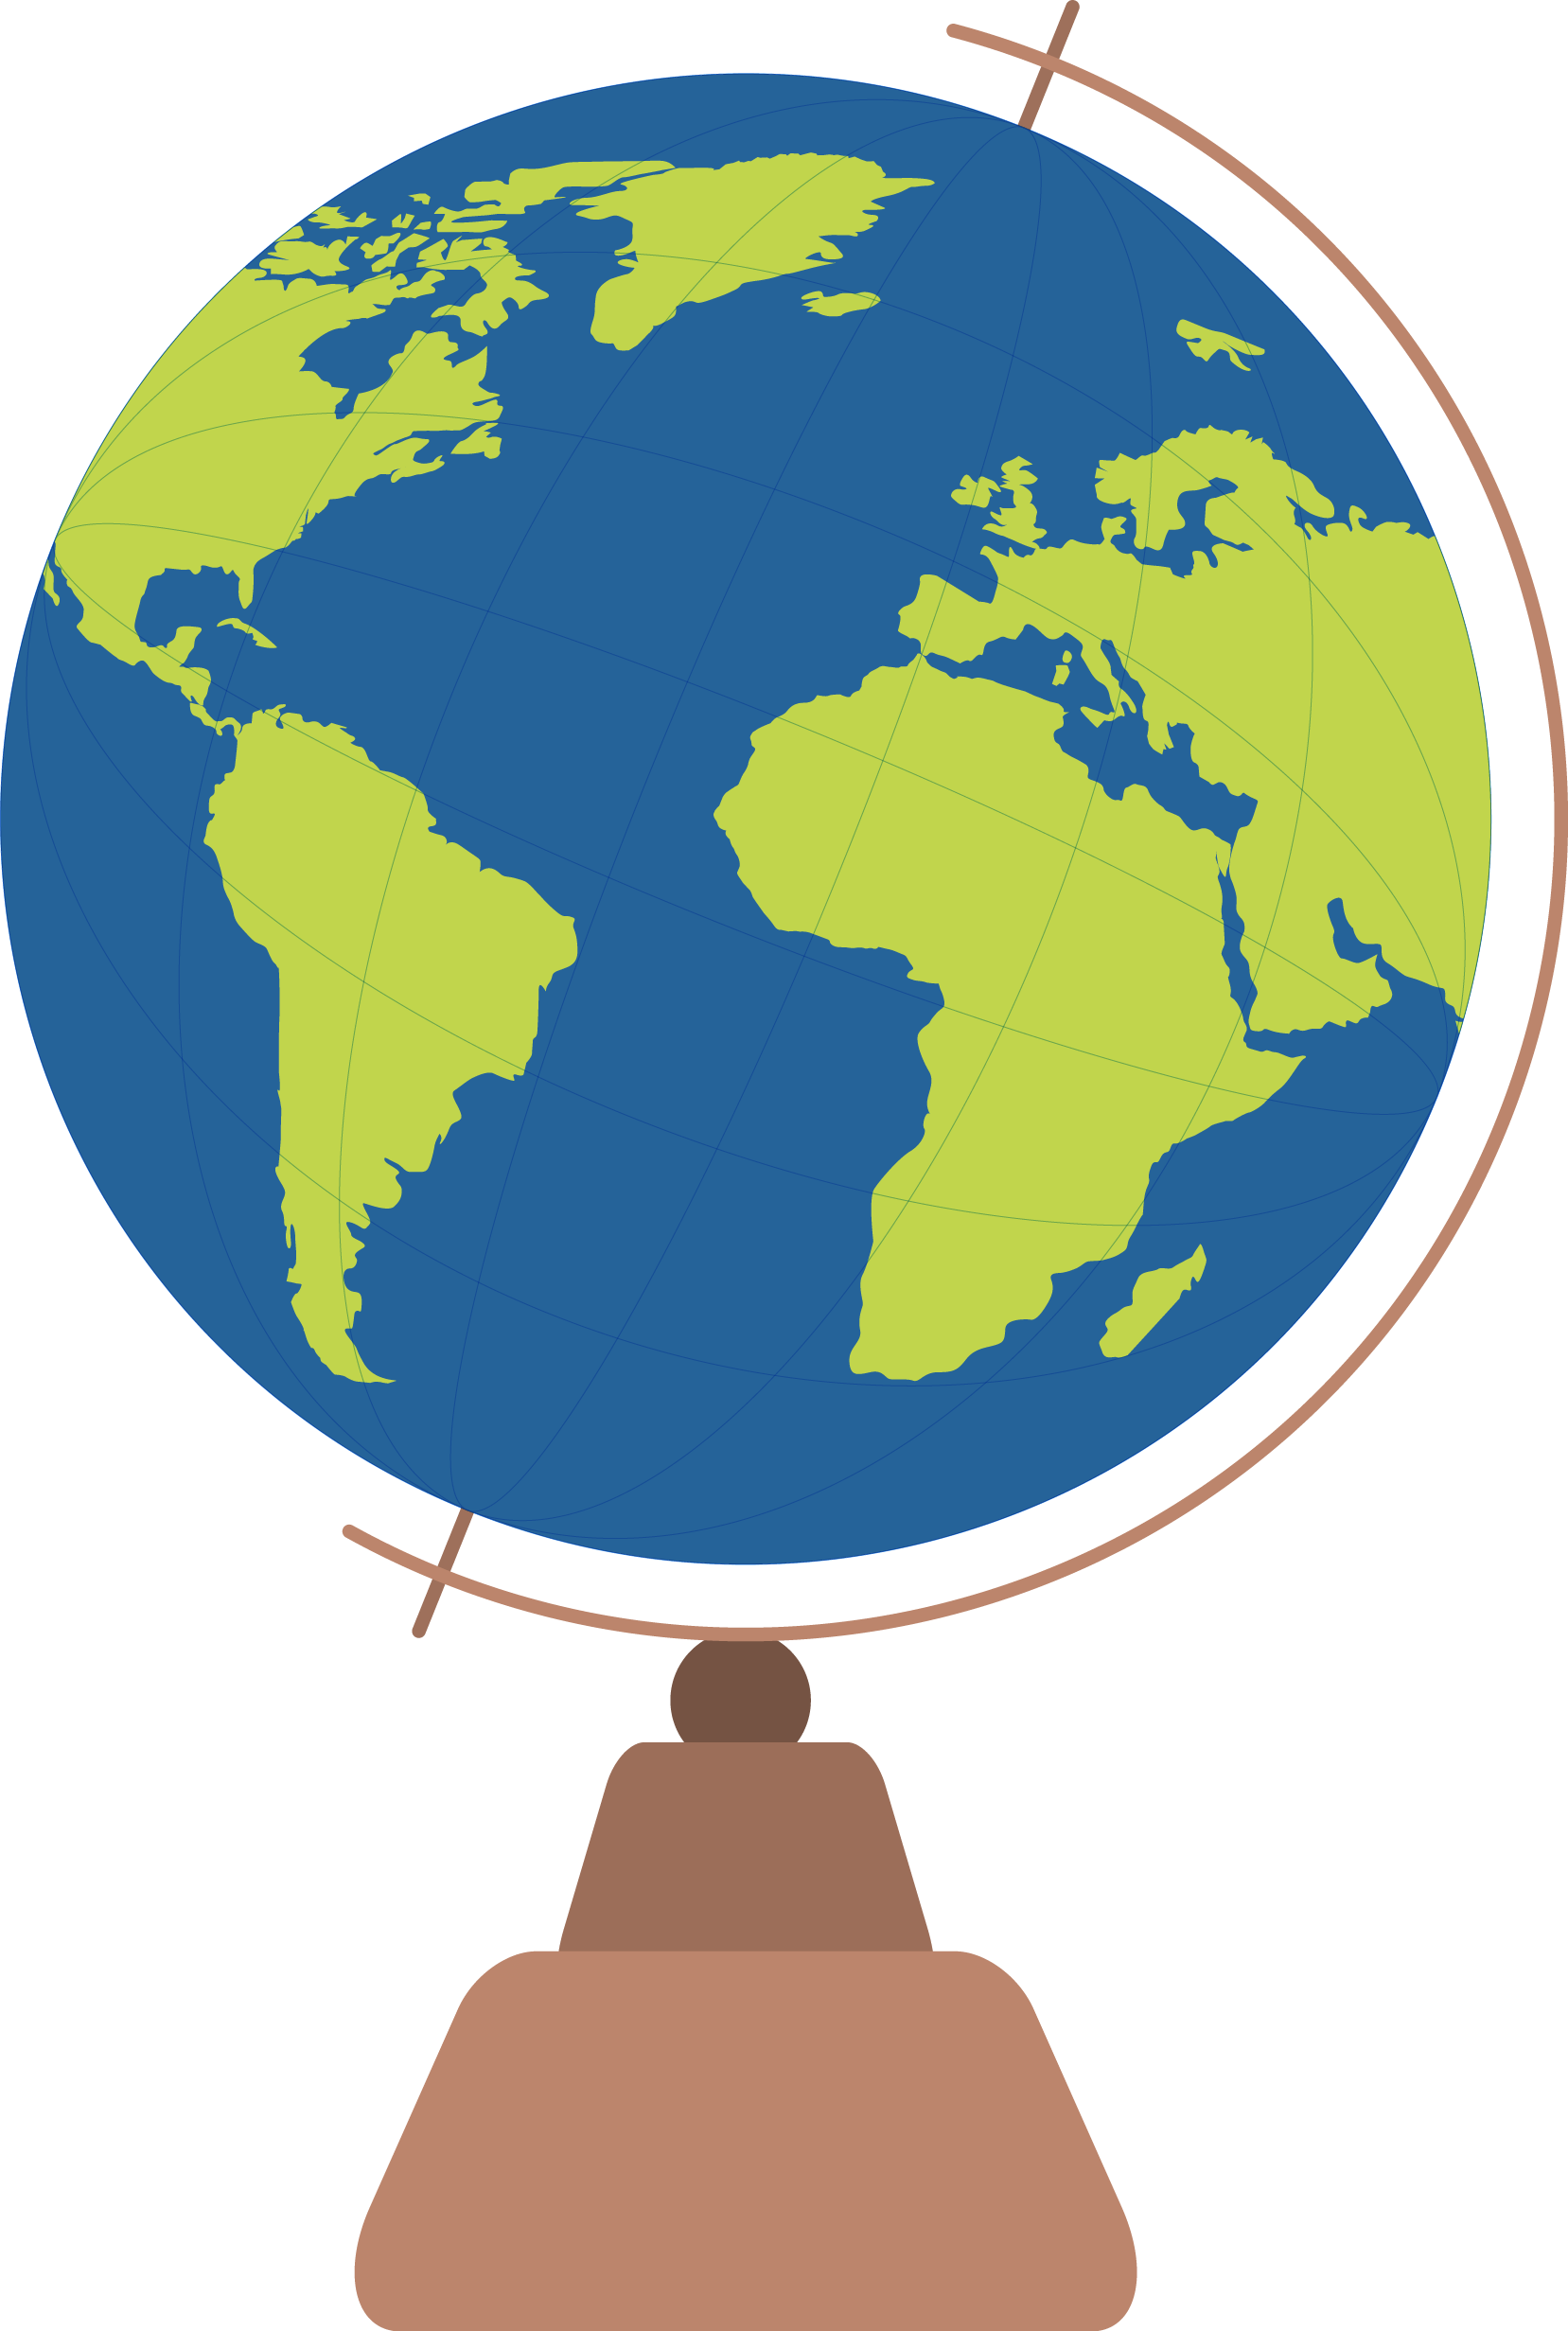 World Globe Vector at GetDrawings com | Free for personal